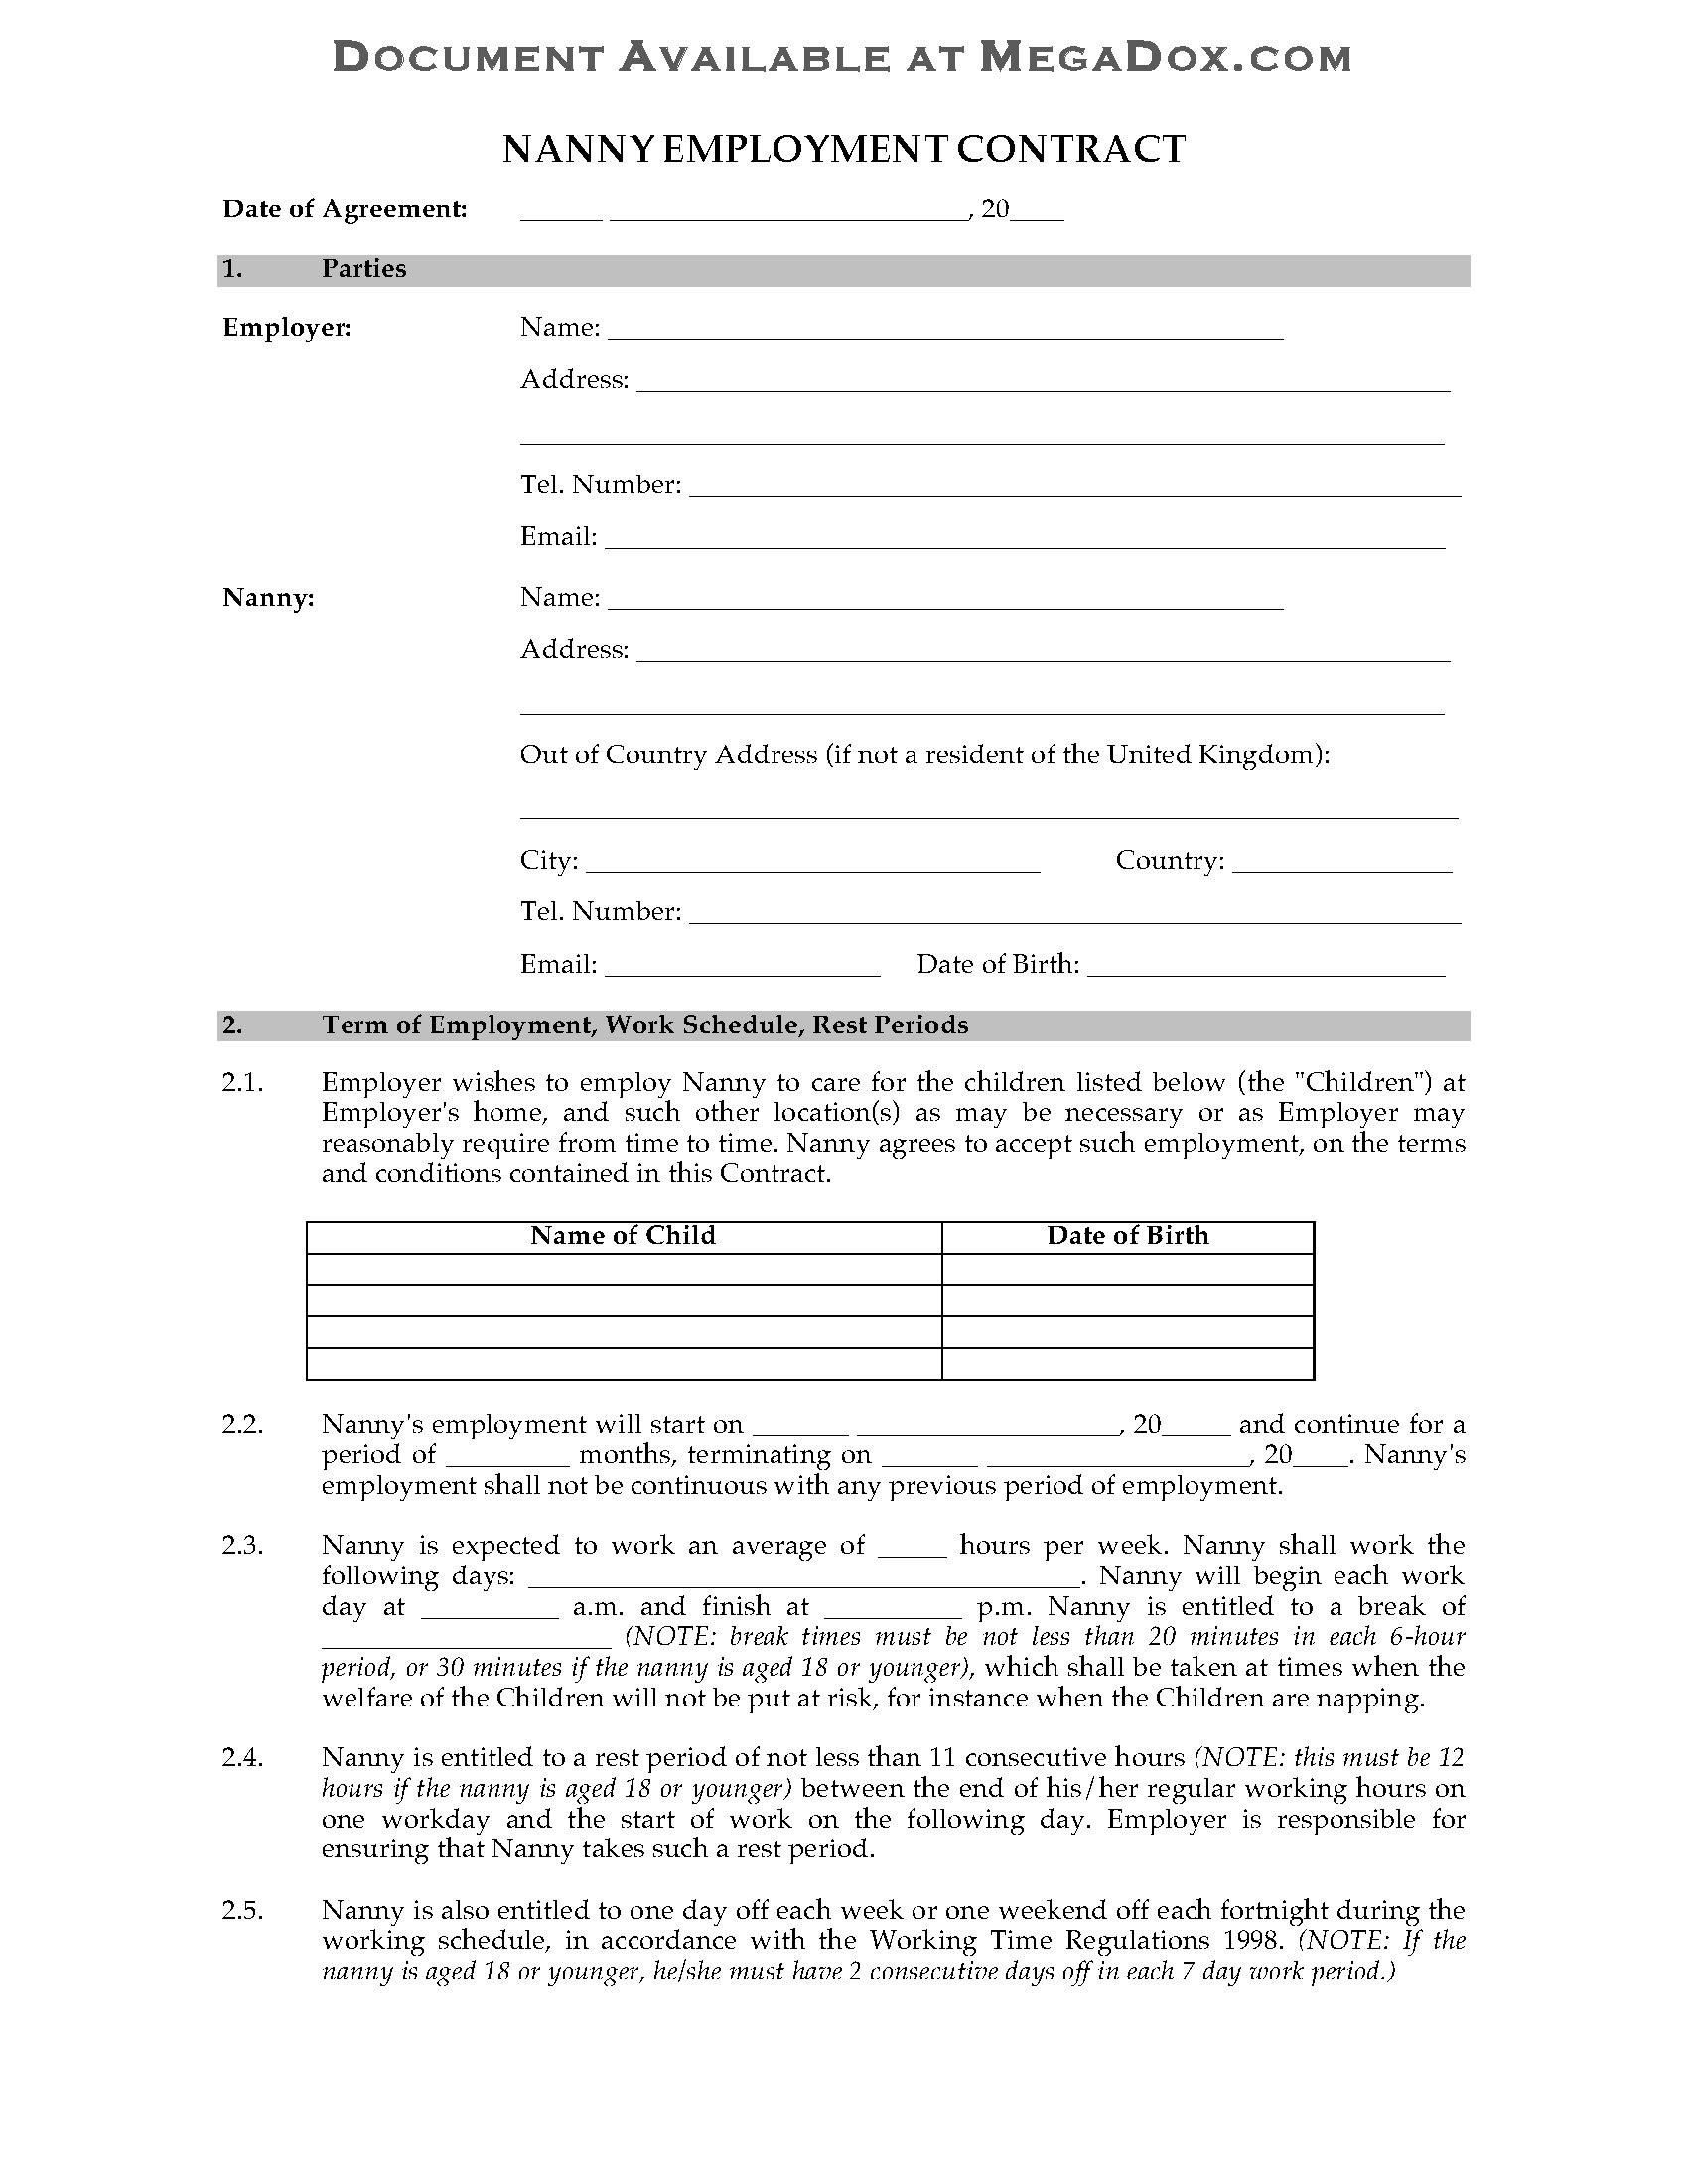 UK Nanny Employment Contract – Nanny Contracts